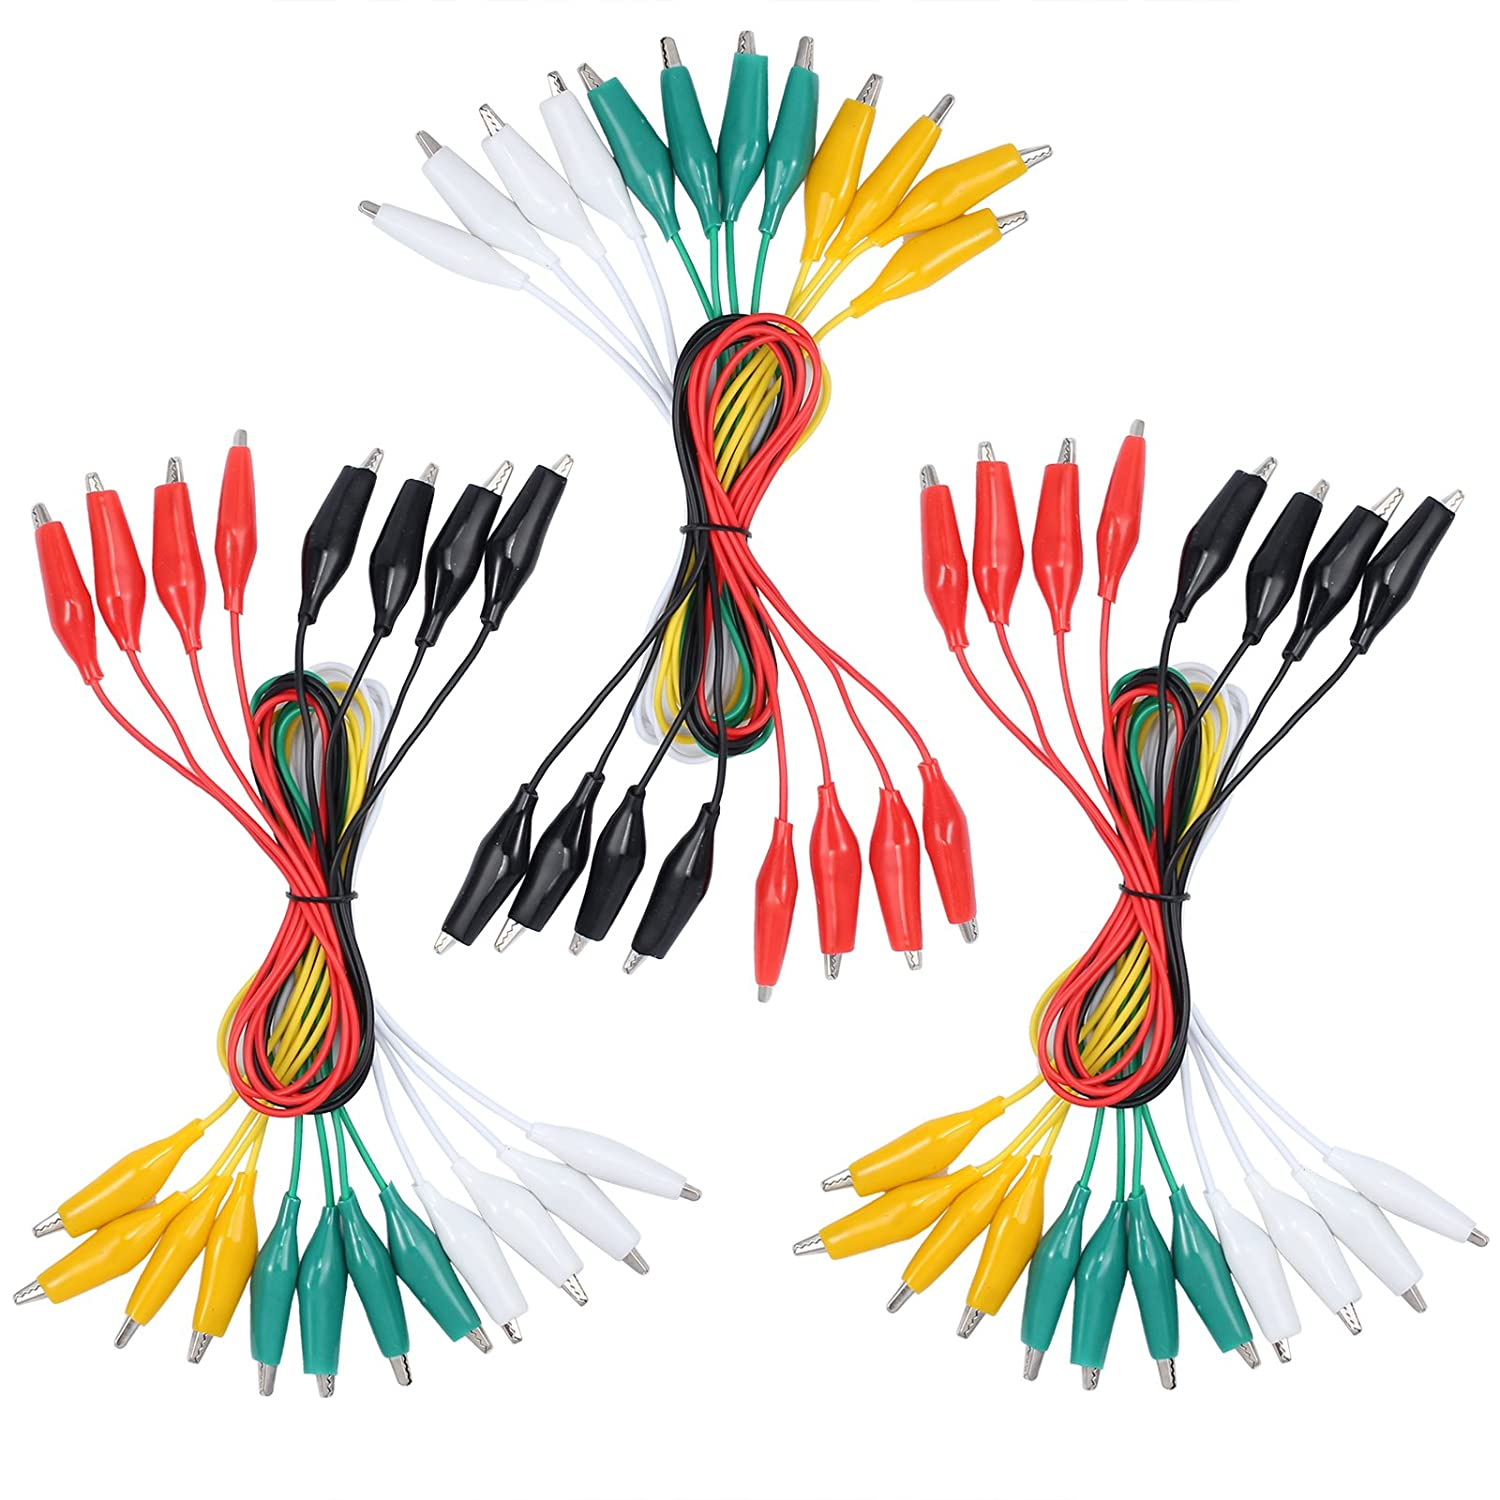 30 PCS 50cm Alligator Clips Test Lead Set Insulated Test Cable Double-Ended Clips for Multimeter or Laboratory Electric Testing Work 20 inches 5 Colors